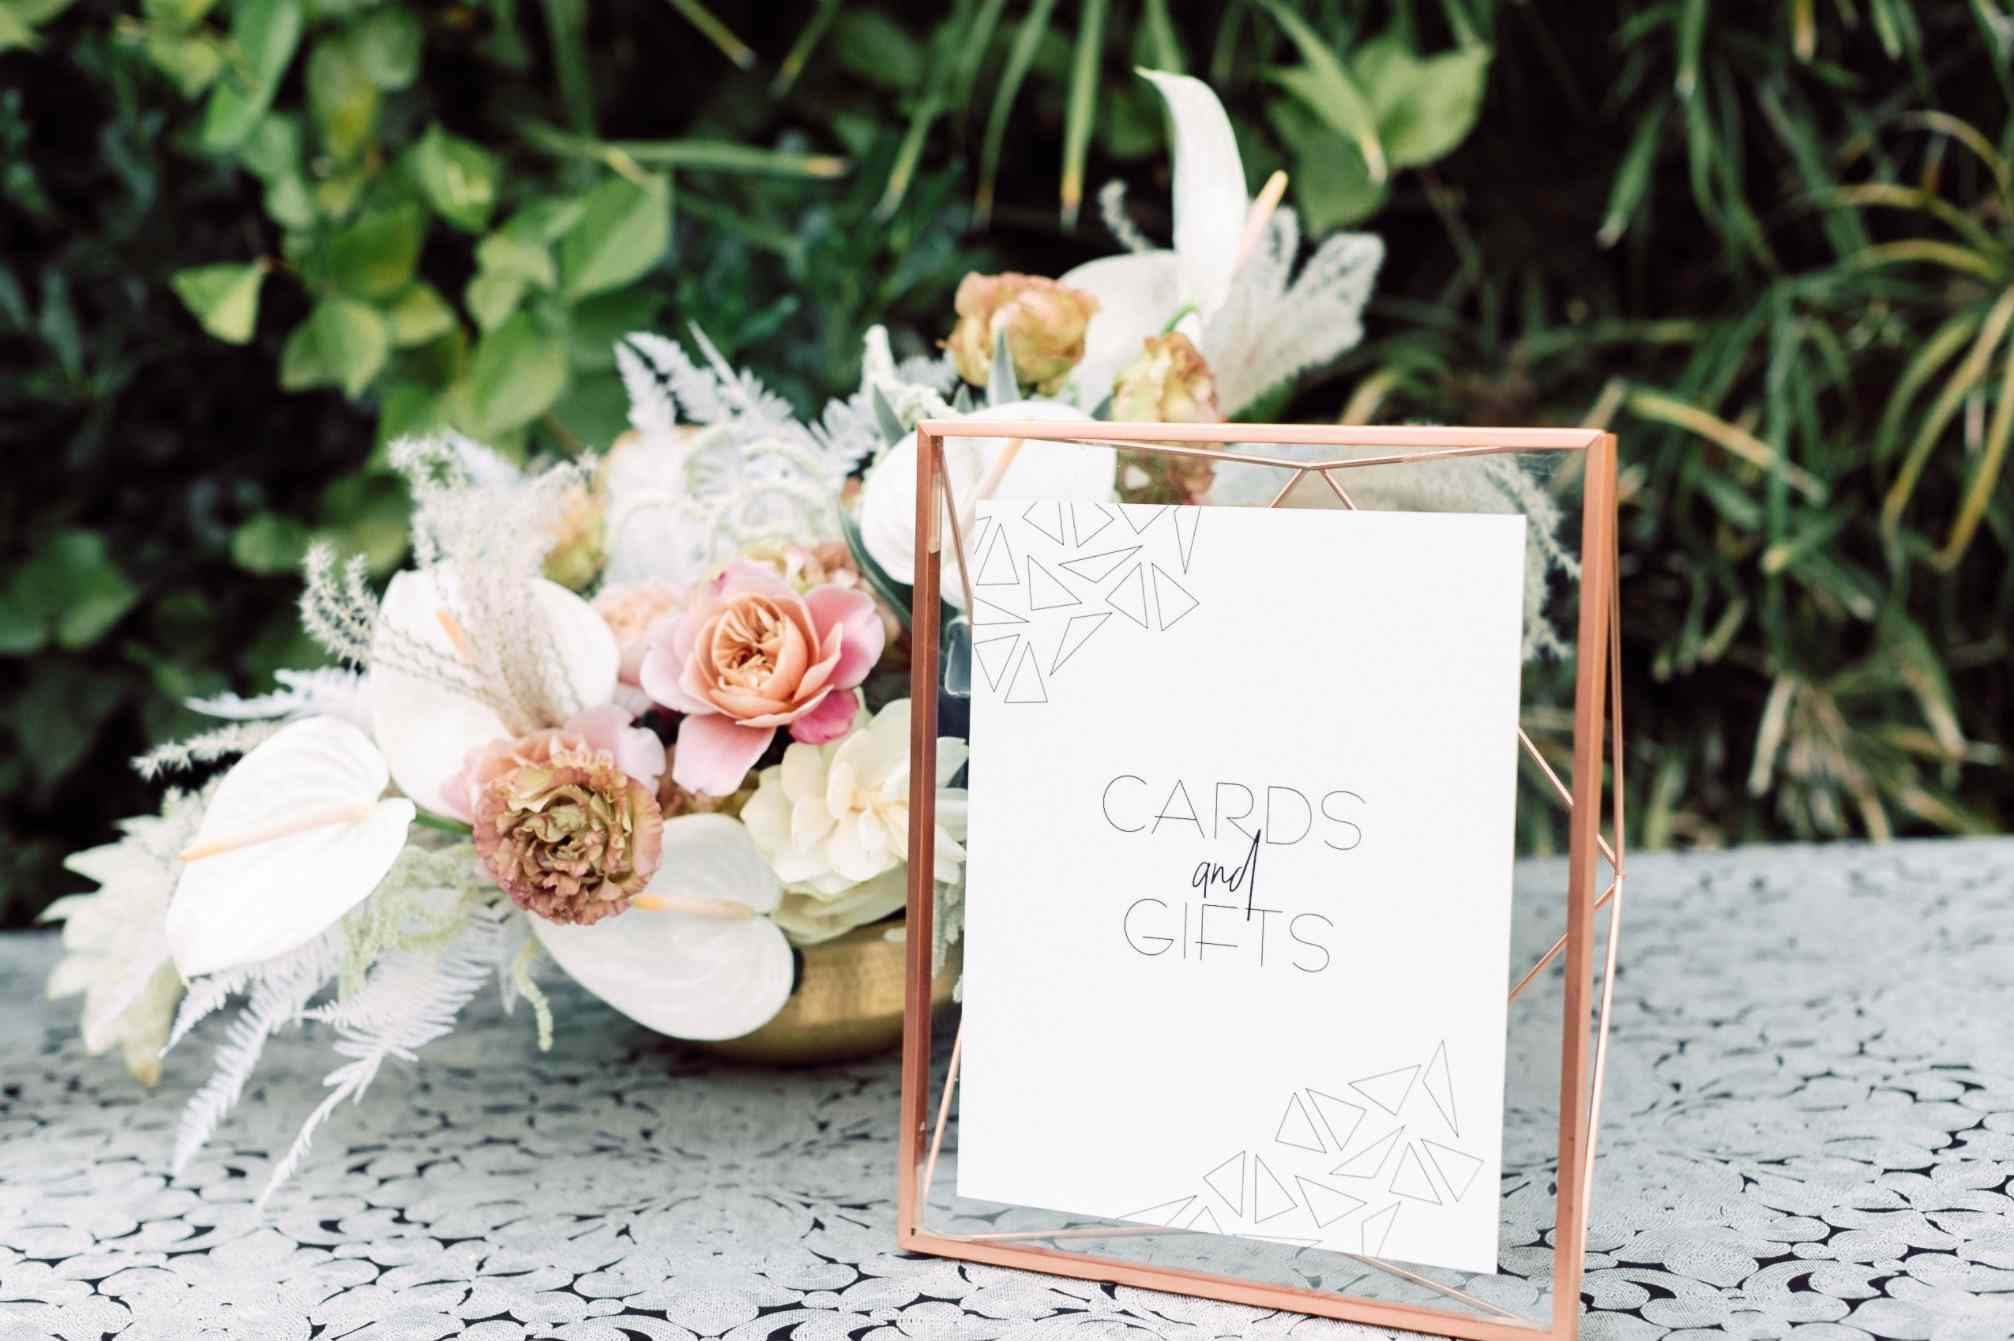 Gift signage with floral centerpiece